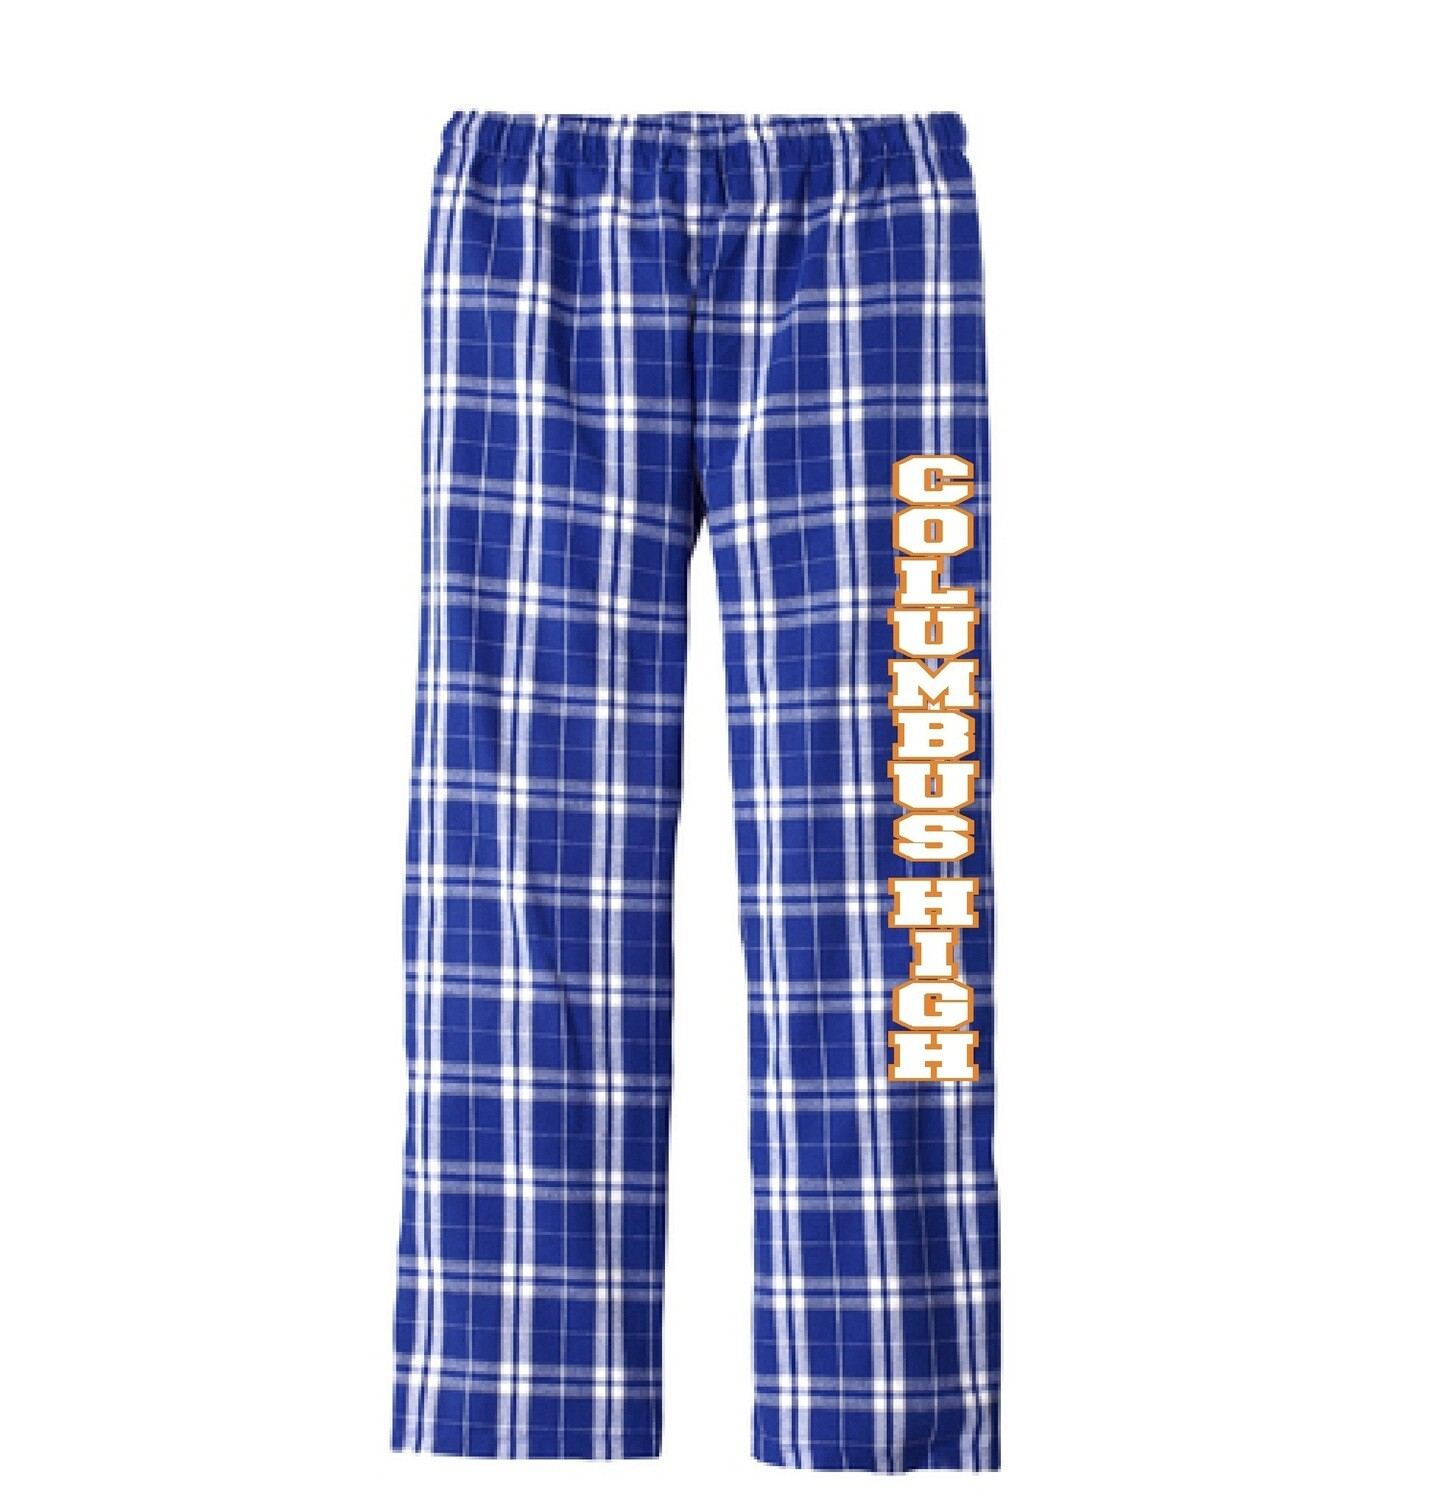 Columbus High Flannel Pajama Pants. Preorder Only by Sunday, December 6th.